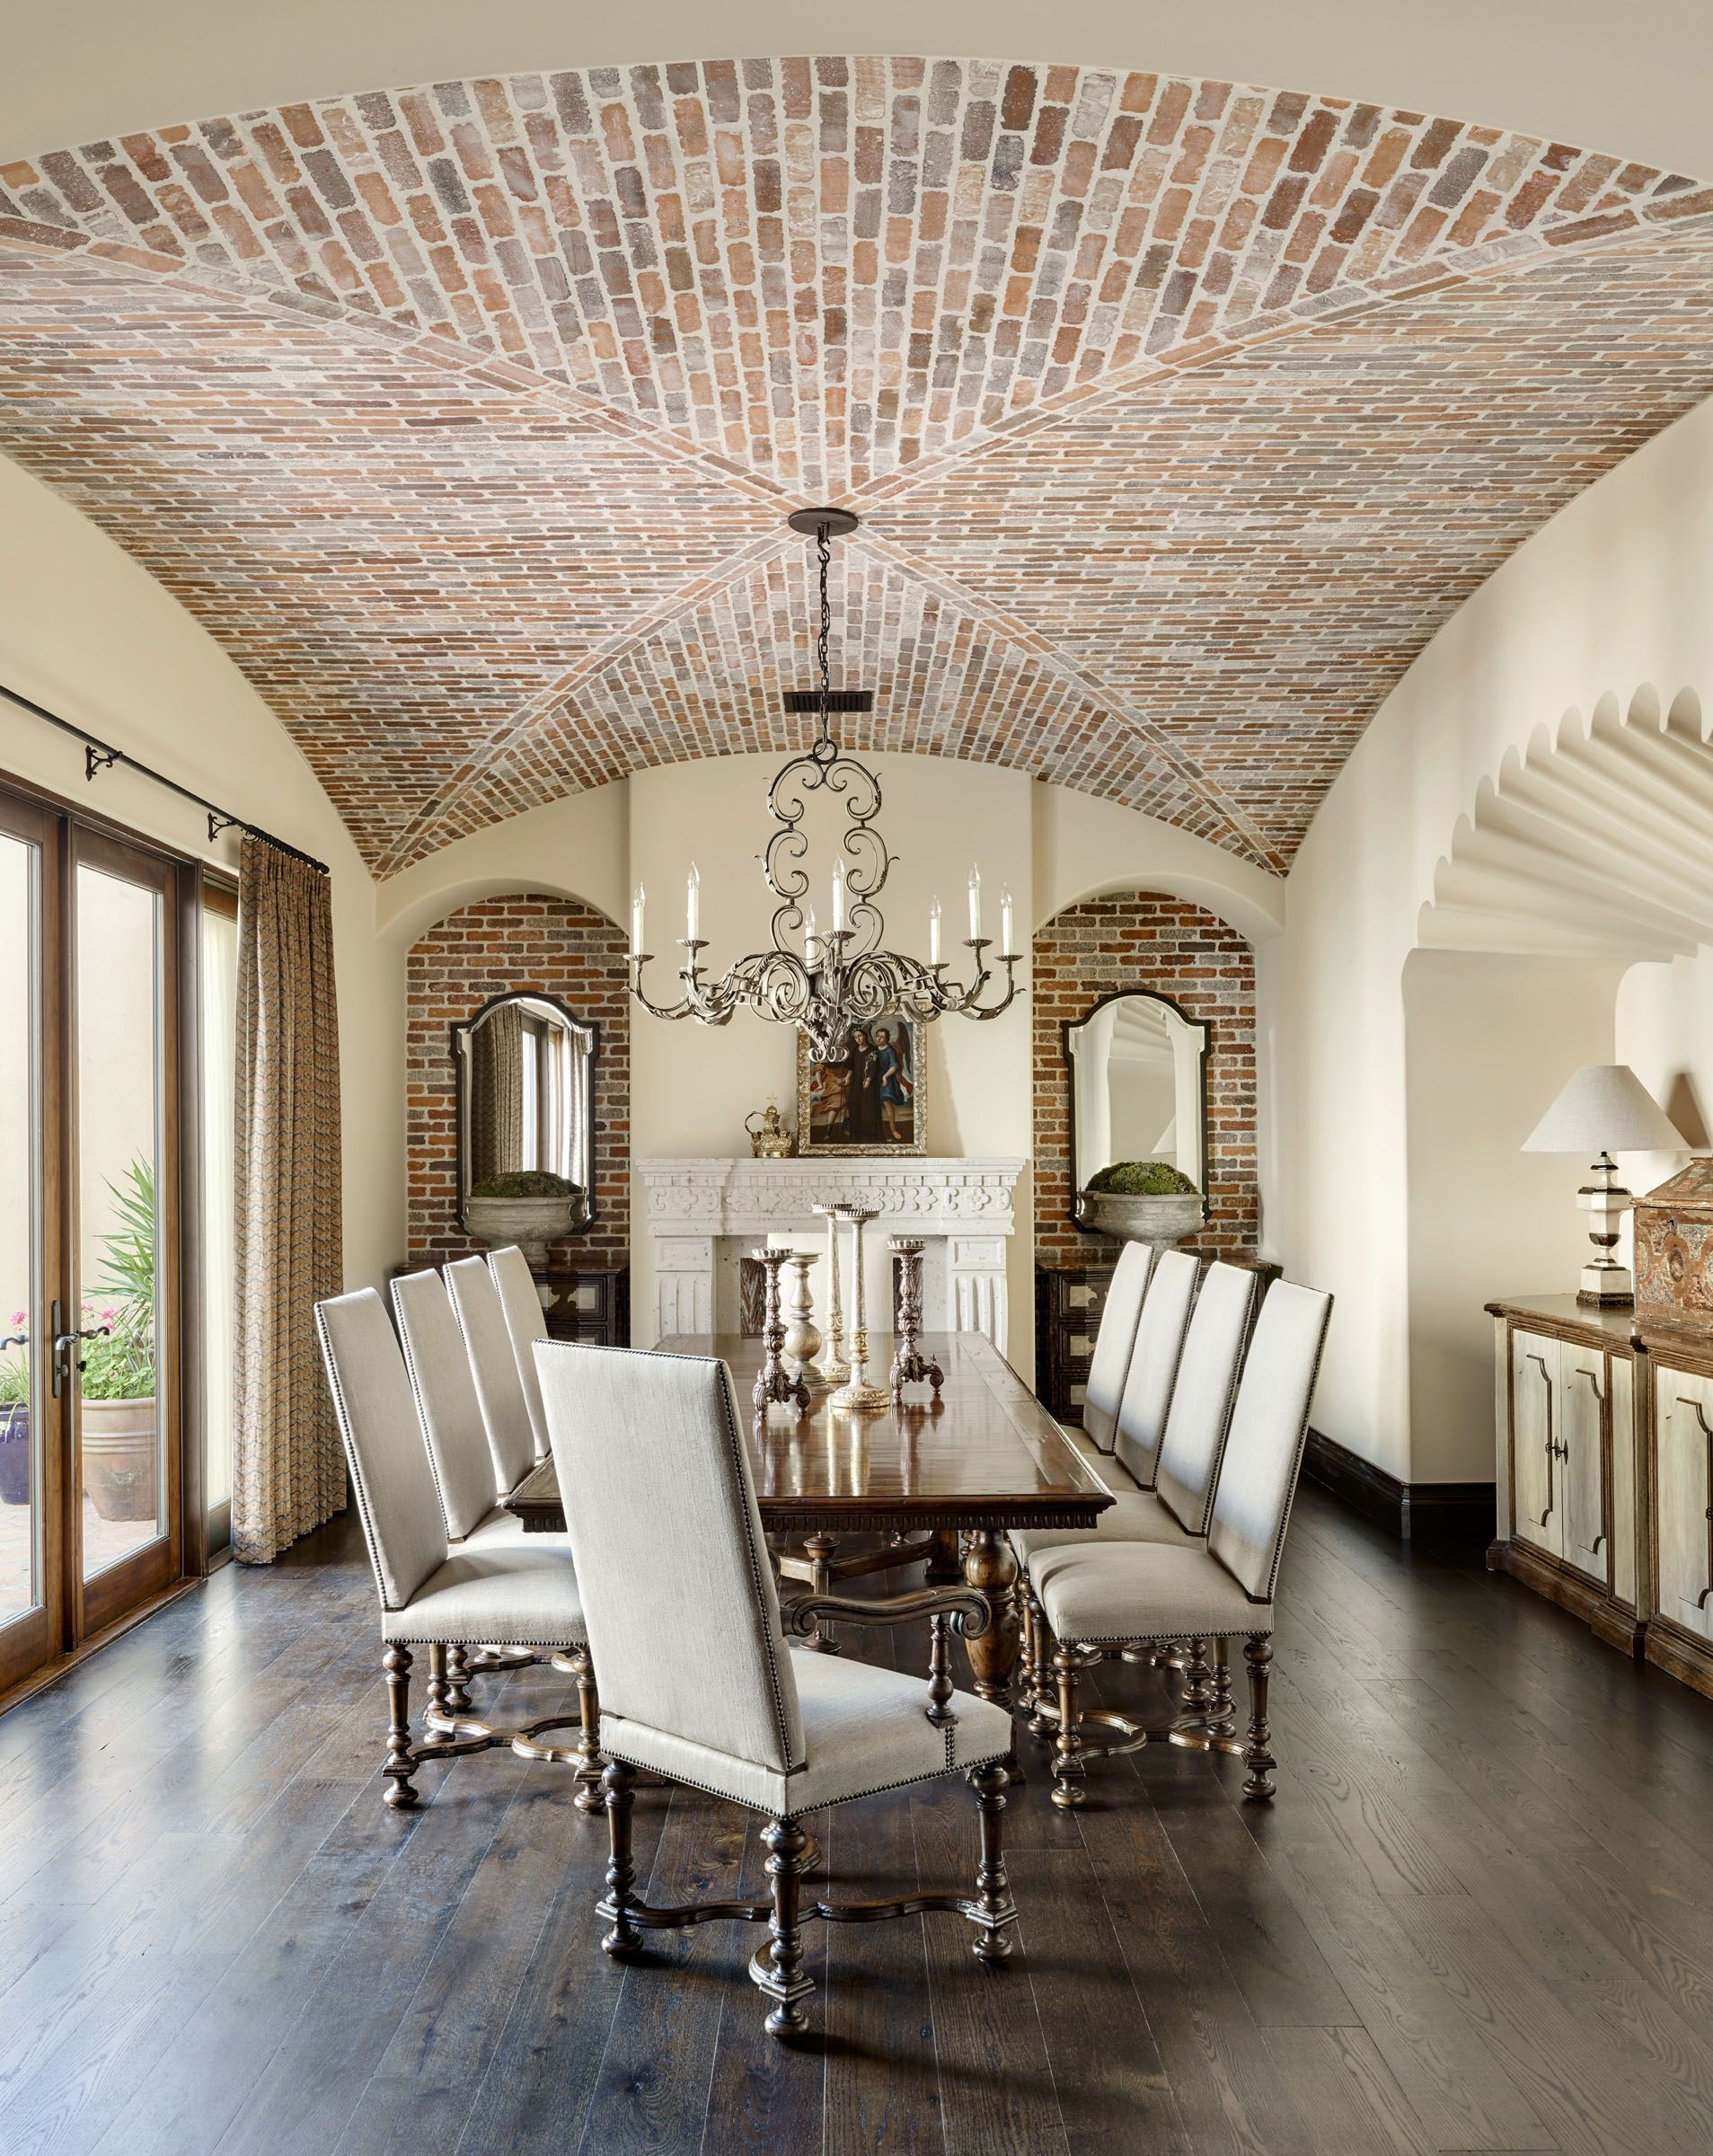 Groin Vault With Brick Dining Room And French Doors | Lisa Lee Hickman